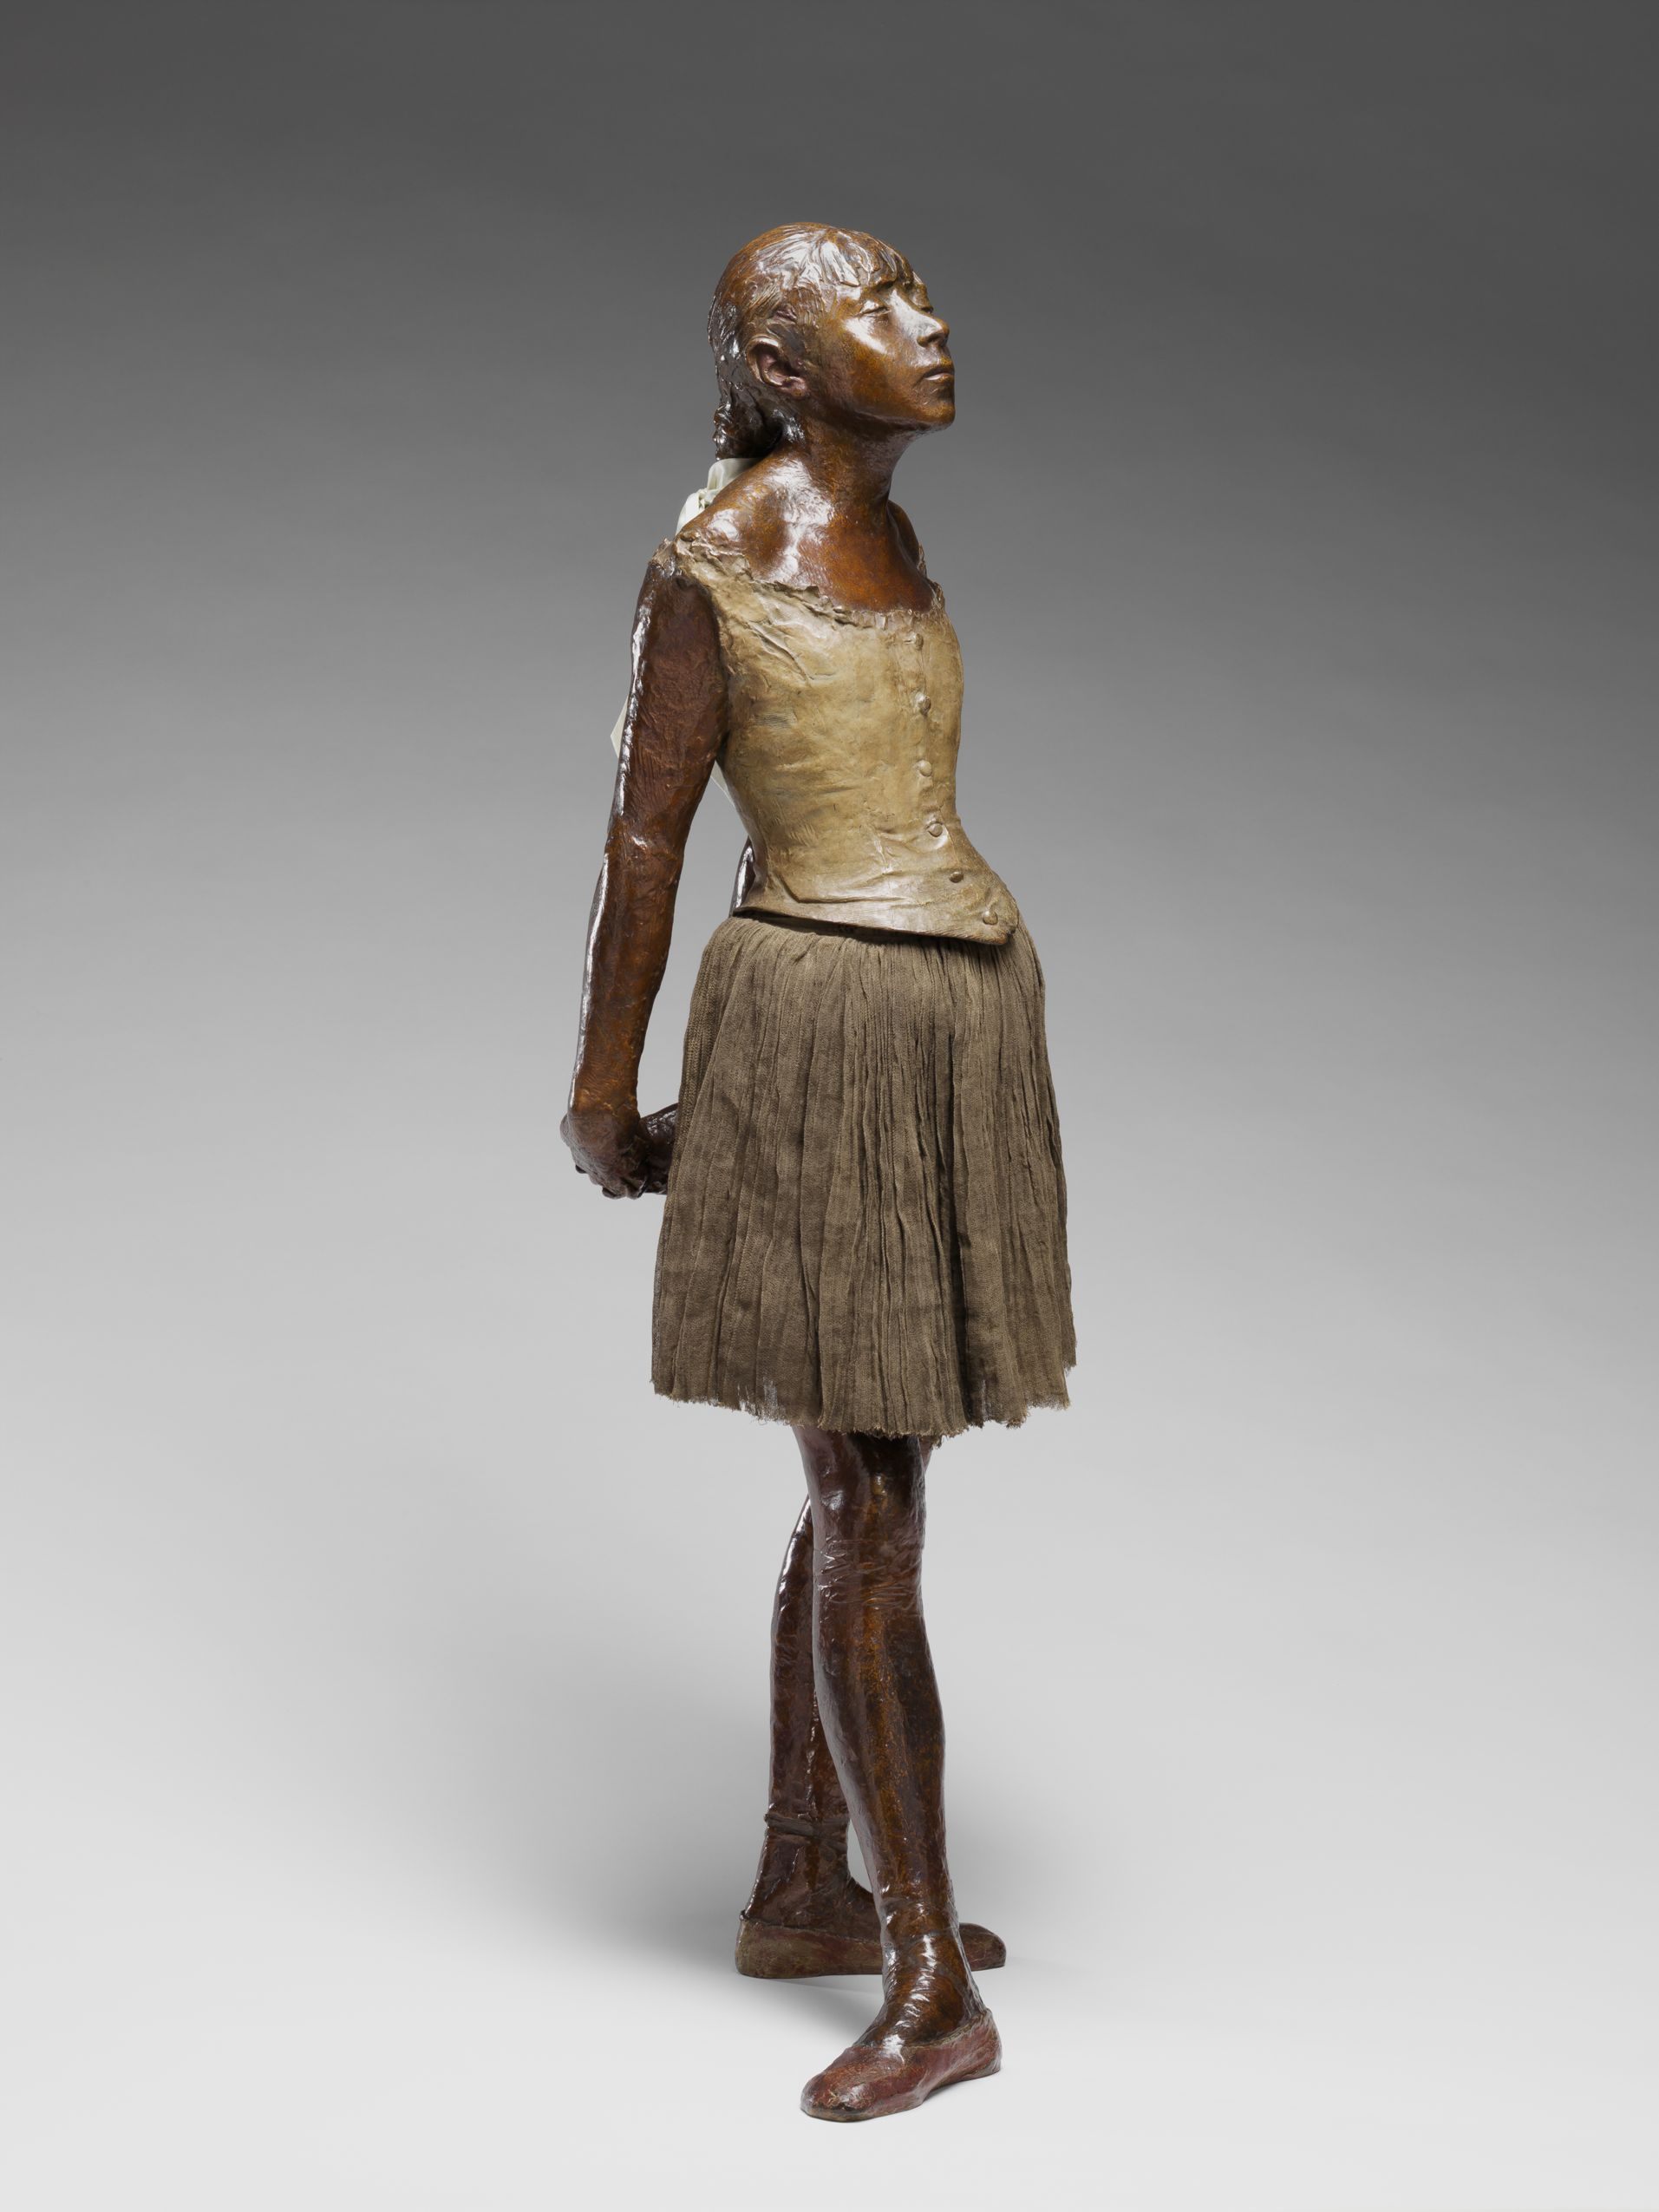 From The Harvard Art Museums Collections Little Dancer